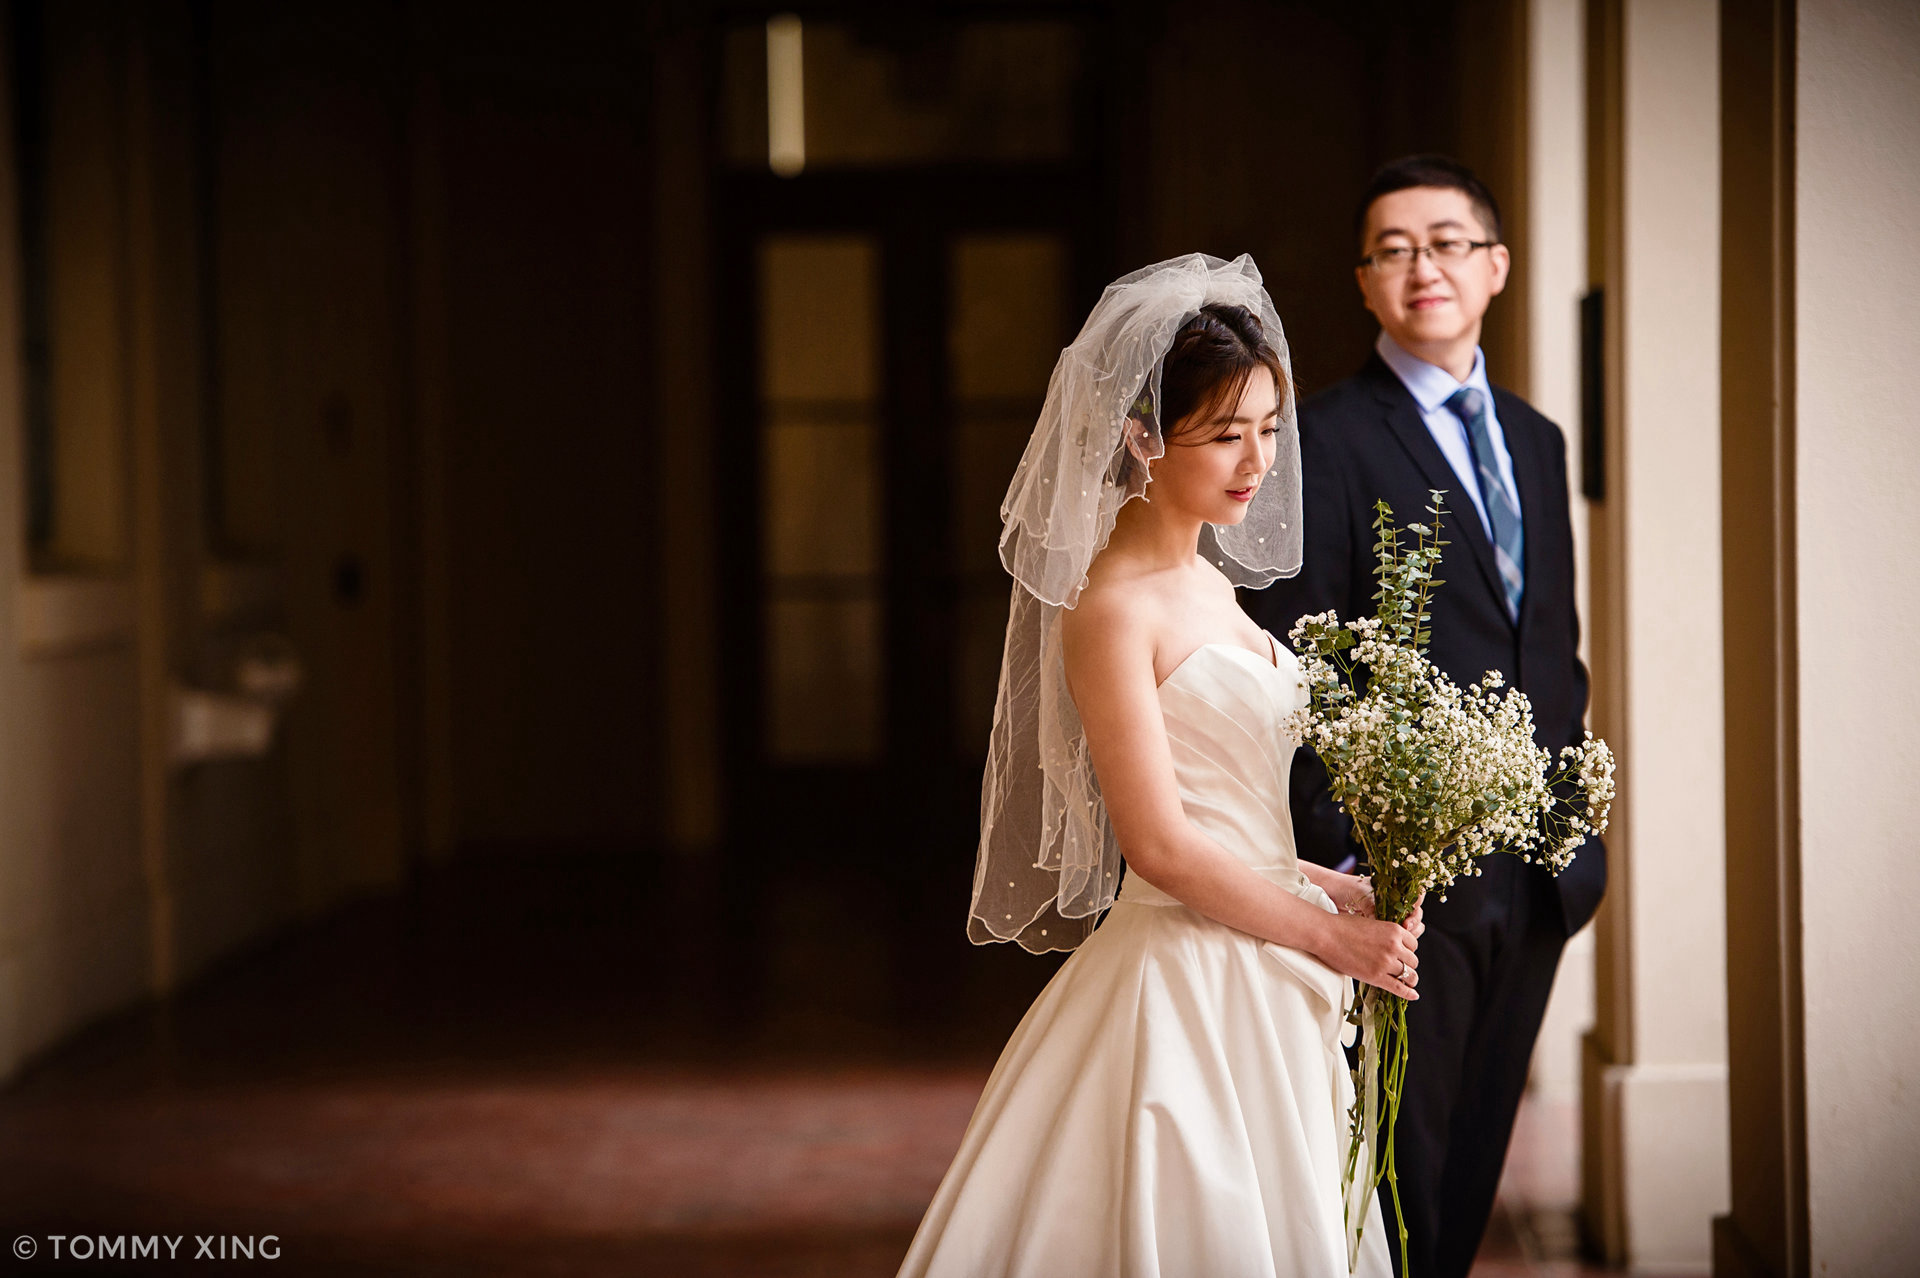 旧金山洛杉矶婚纱照 Tommy Xing Wedding Photography 02.jpg